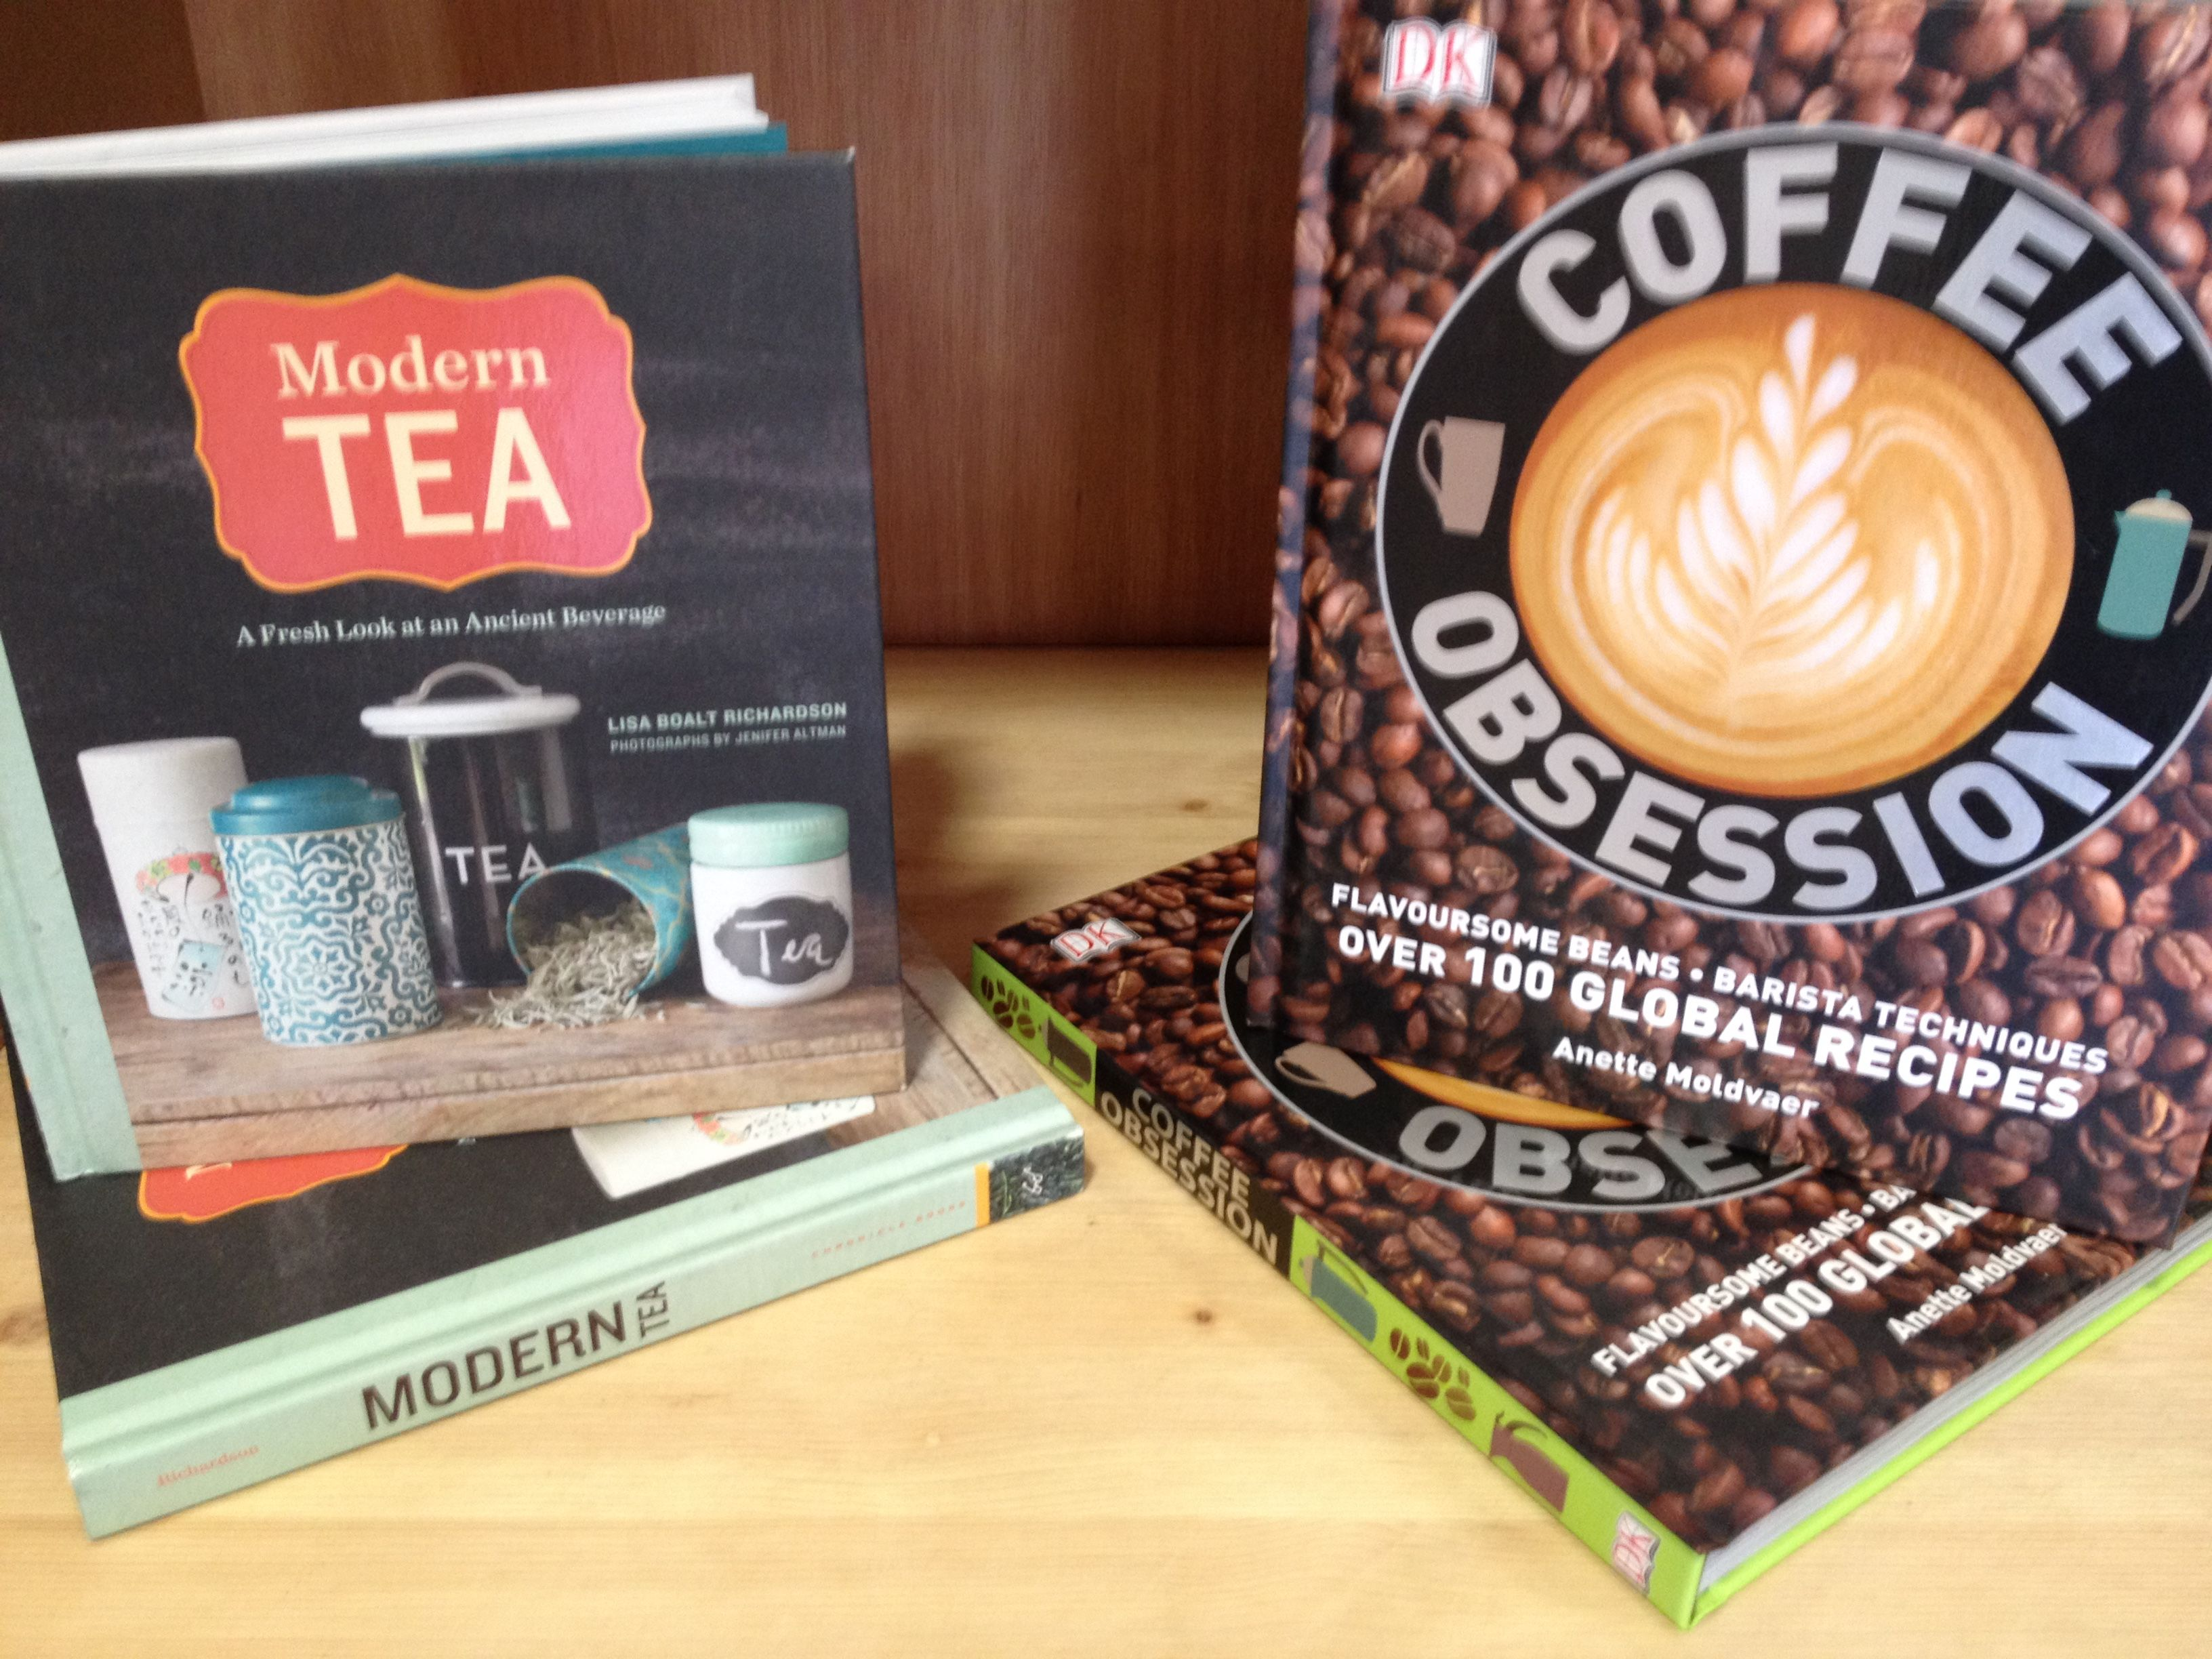 Essential reading materials for coffee and tea